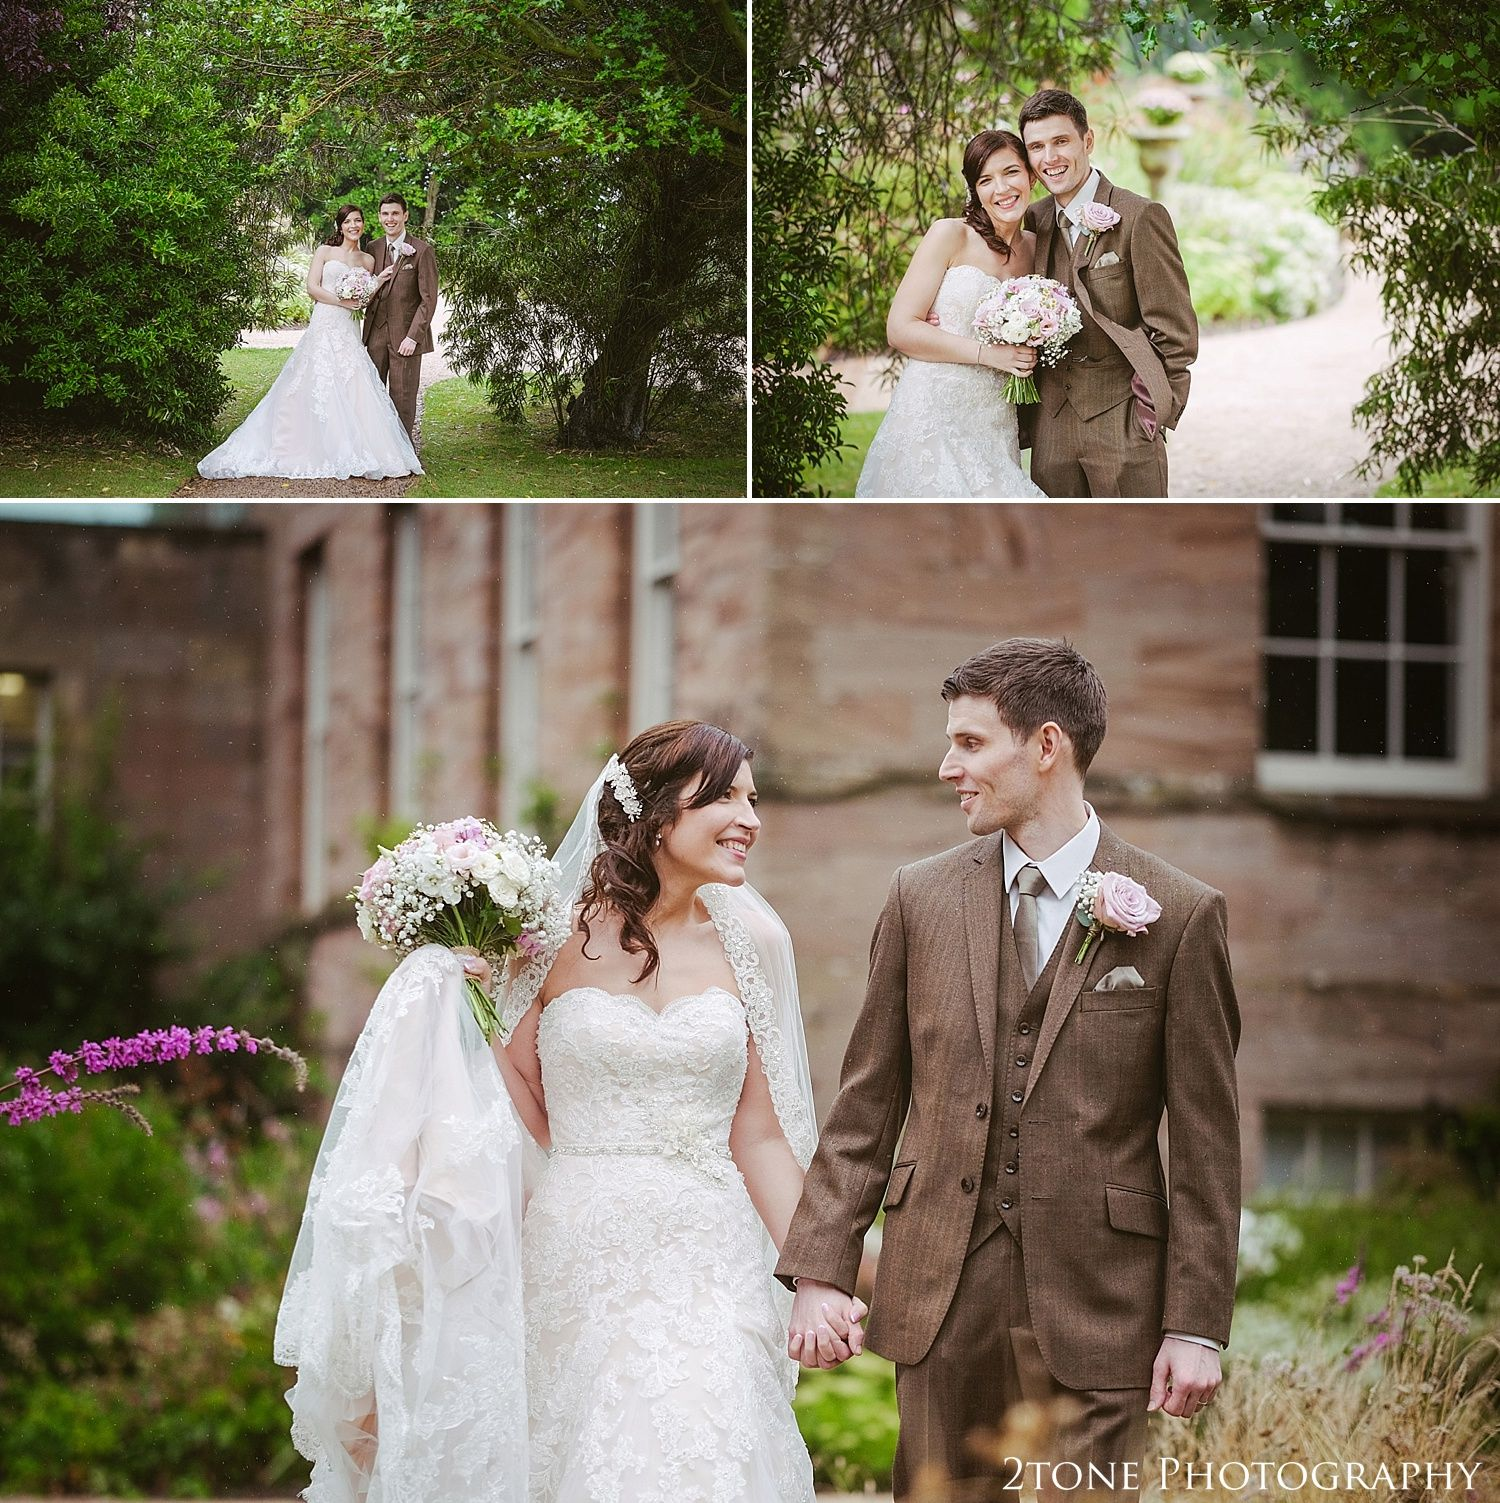 Natural Wedding Photographs At Newton Hall By Husband And Wife Photographer Team 2tone Photography